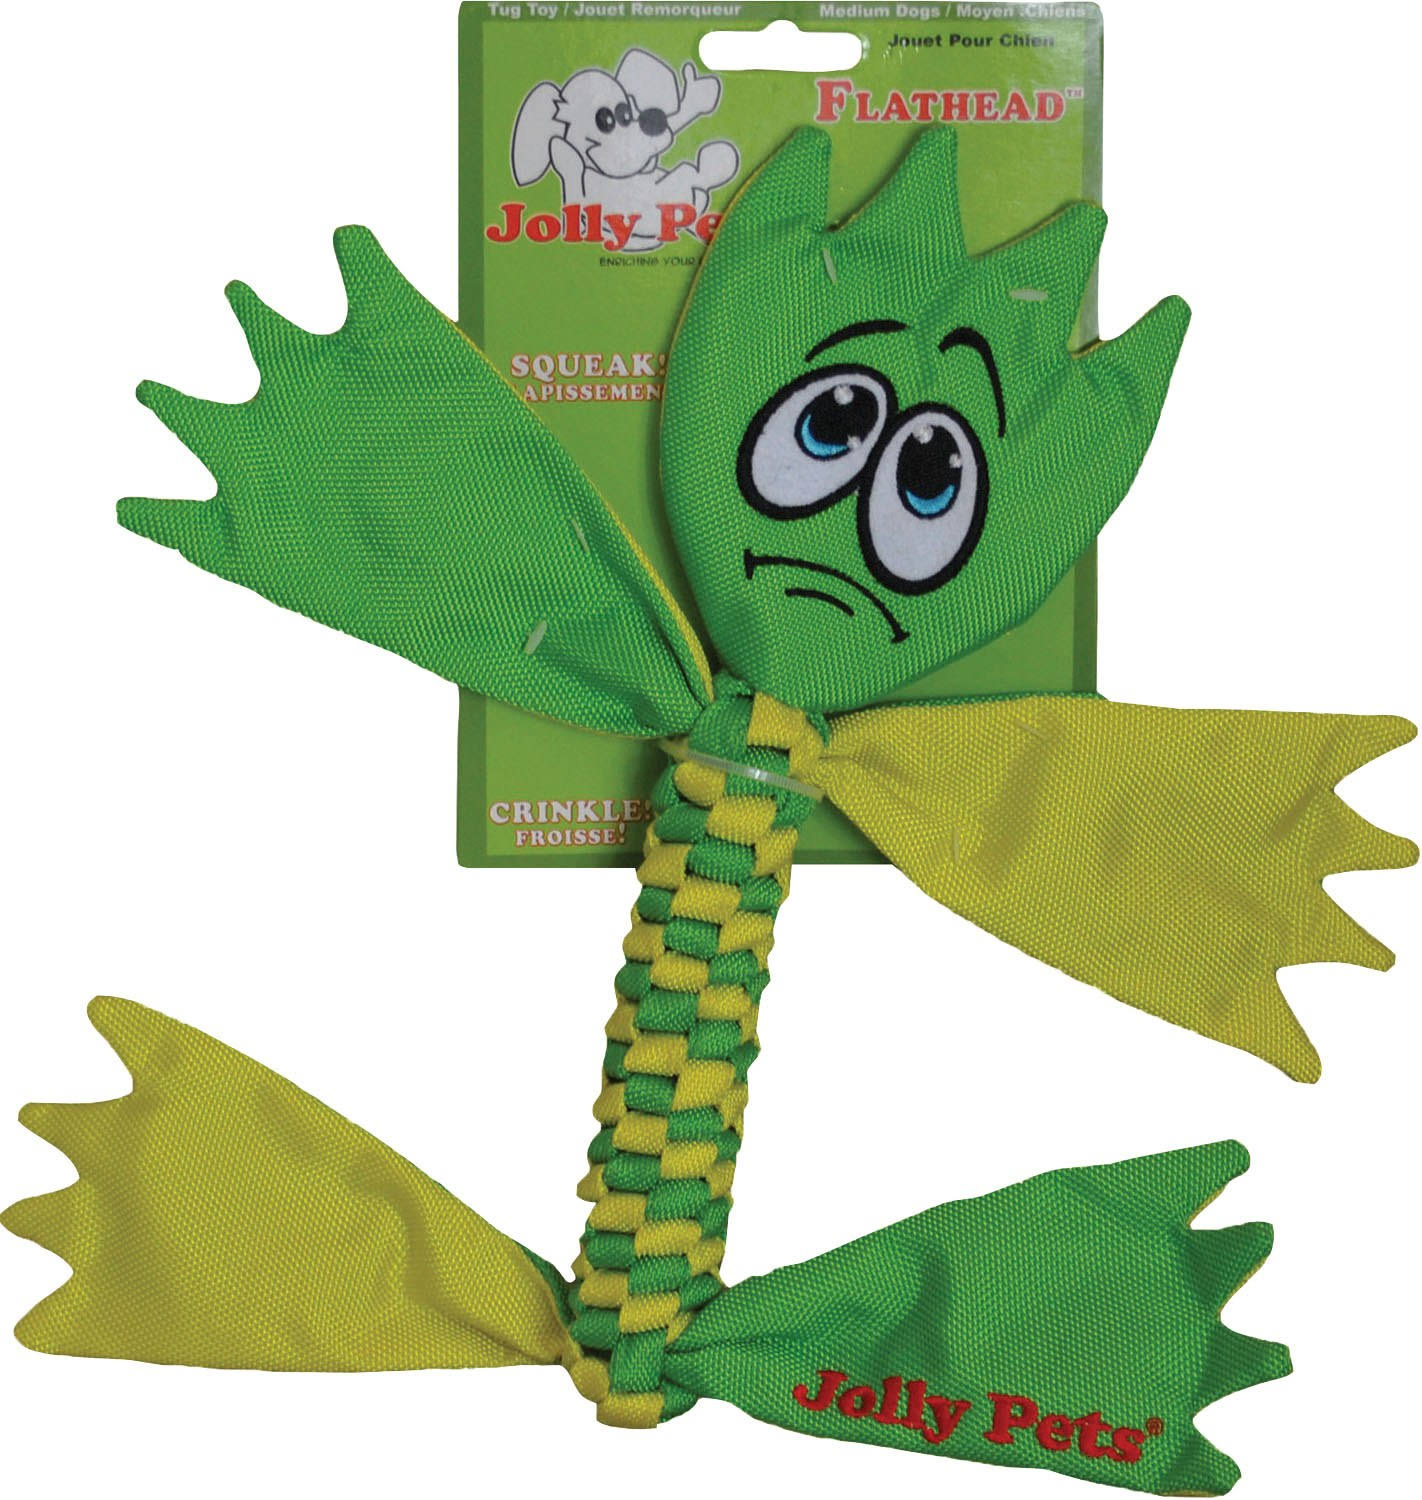 Jolly Pets Flathead Tug Toy - Medium